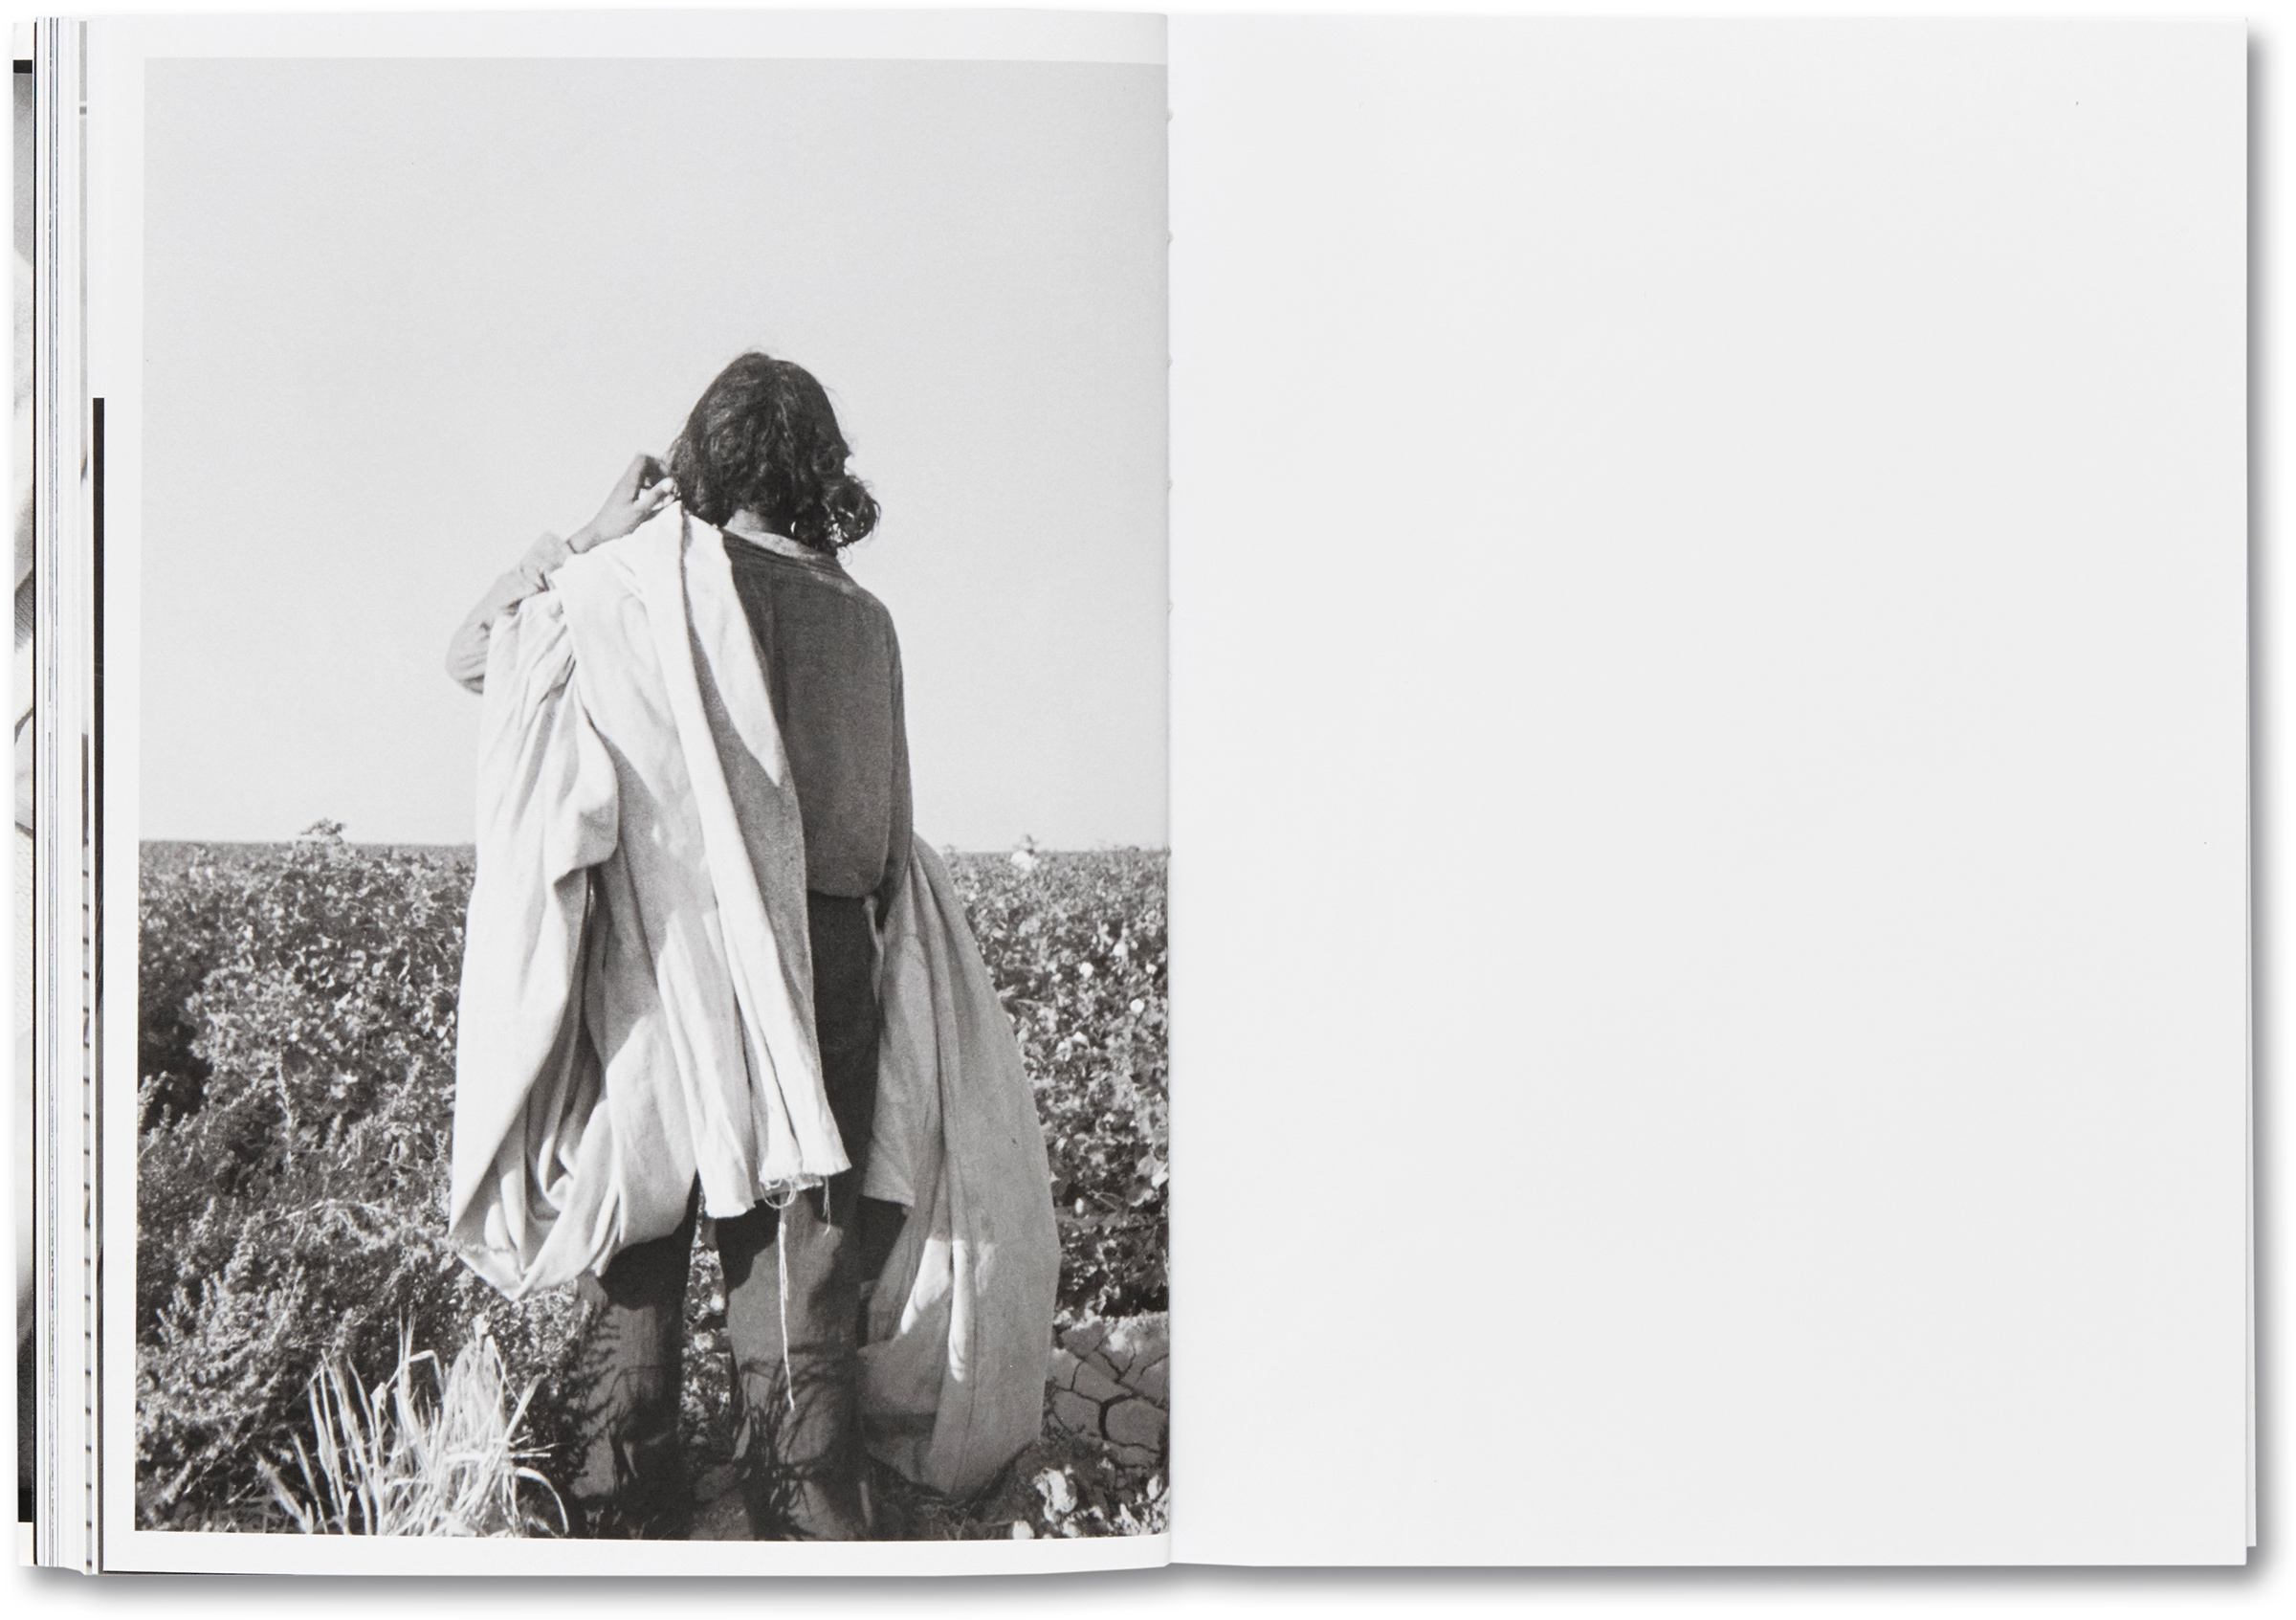 Untitled, from the book 'Day Sleeper, Dorothea Lange-Sam Contis'.